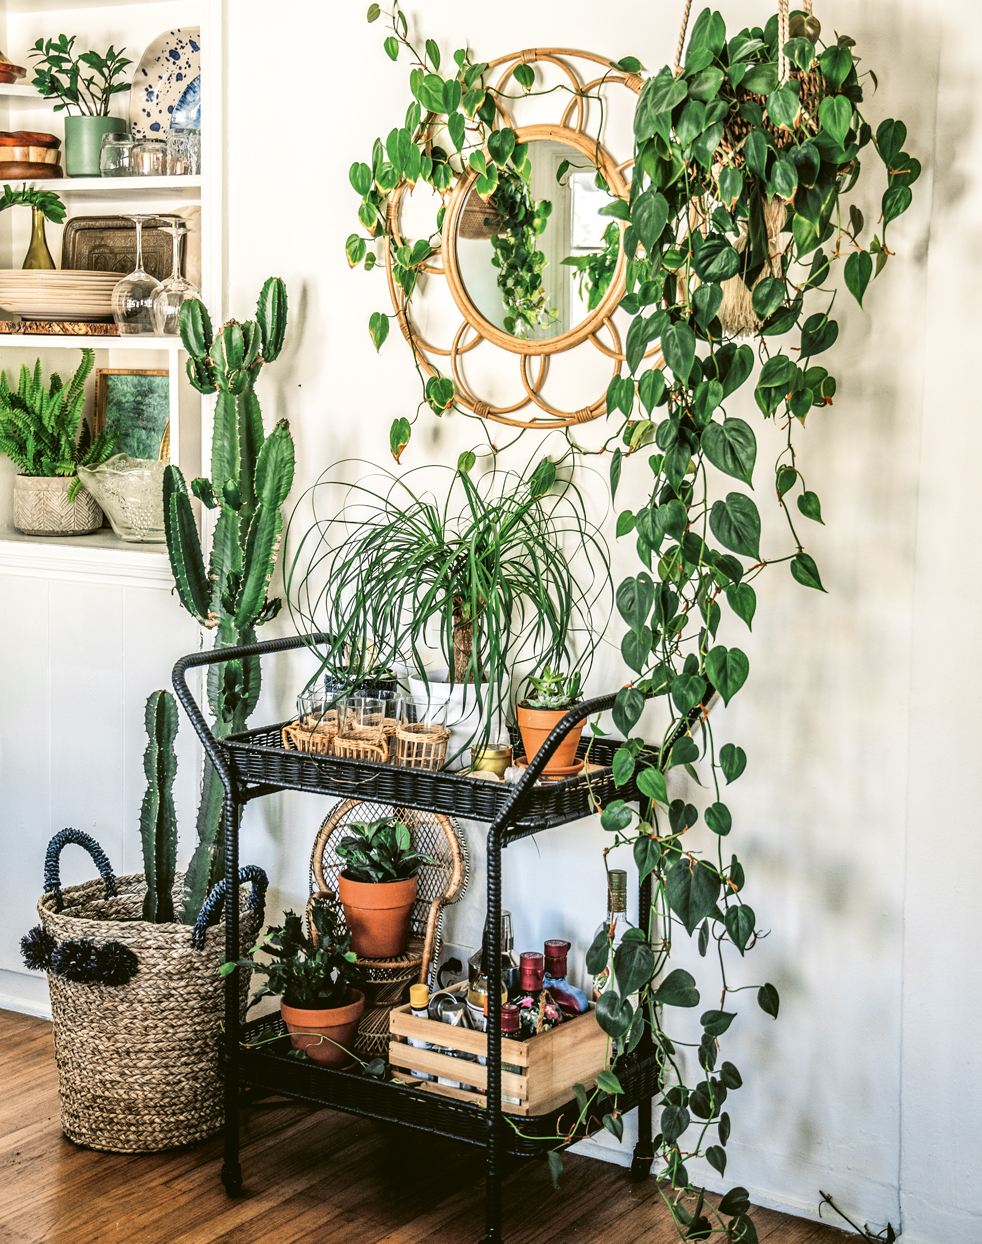 Houseplants with a round mirror and bar cart